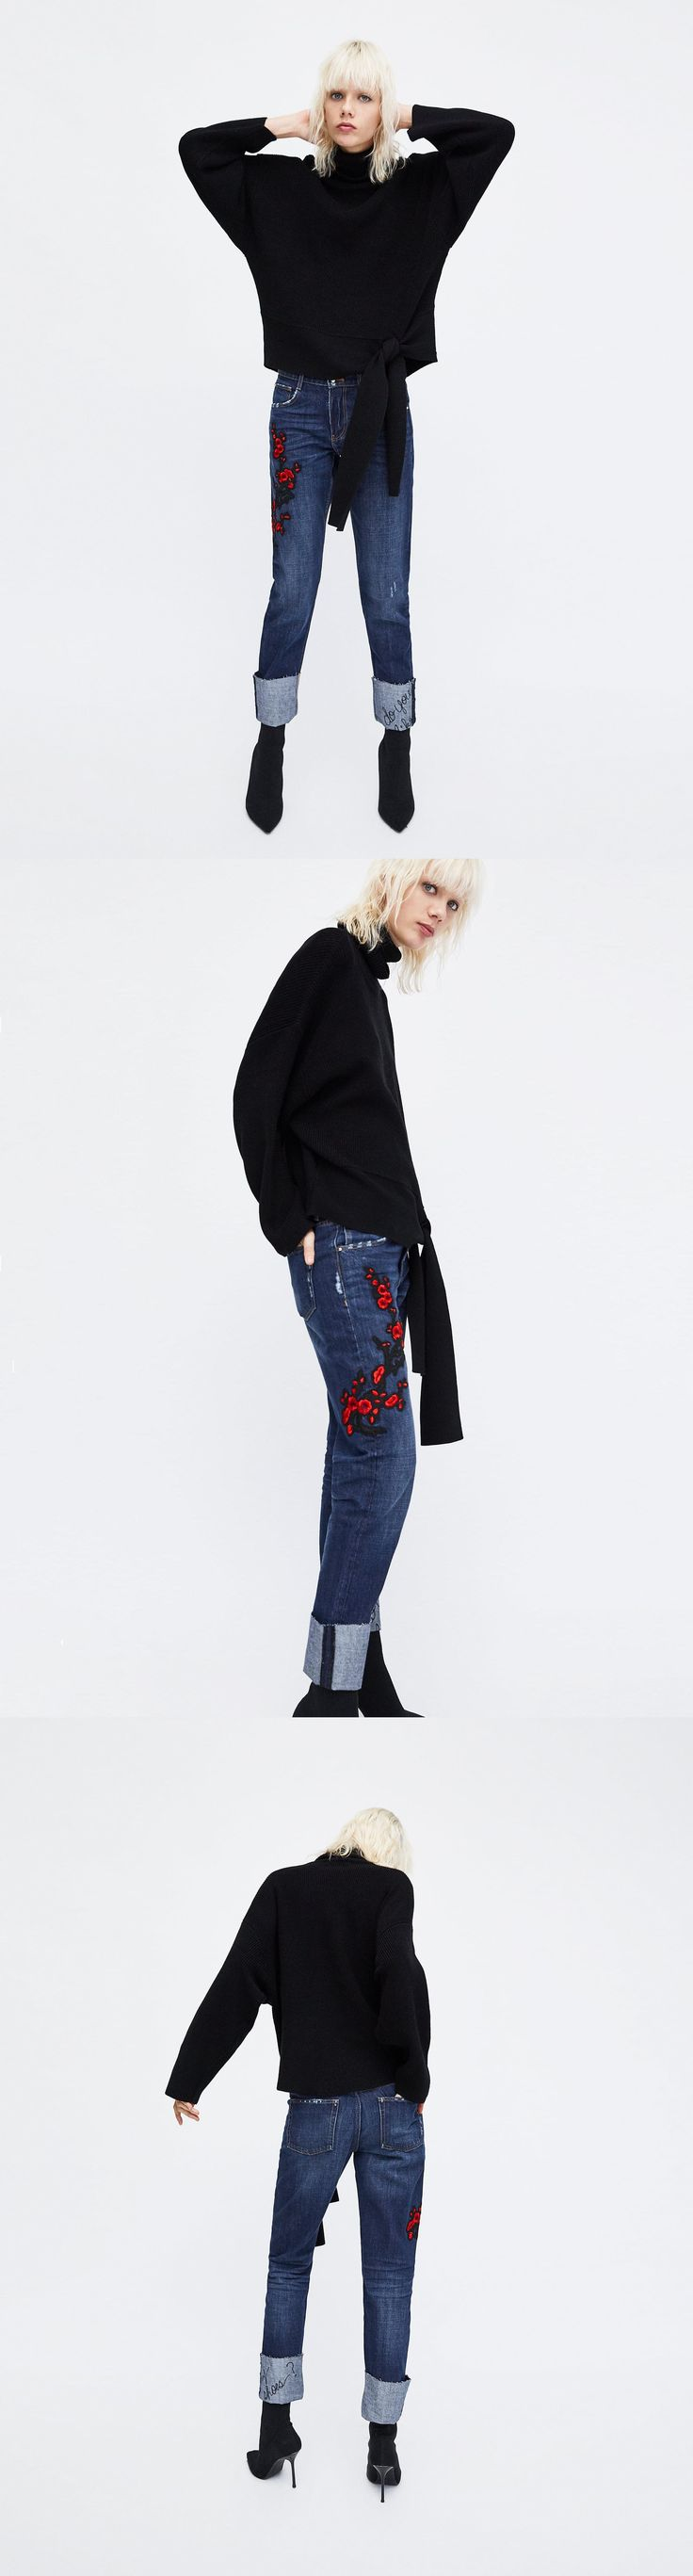 Embroidered Cigarette Jeans // clojure.lang.LazySeq@3041e38b // Zara // Cigarette jeans with contrasting floral embroidery on the side. Featuring rolled-up hems, an embroidered slogan, five pockets and distressed-effect details. Fastens in the front with a round button and zip. HEIGHT OF MODEL: 177 cm. / 5′ 9″